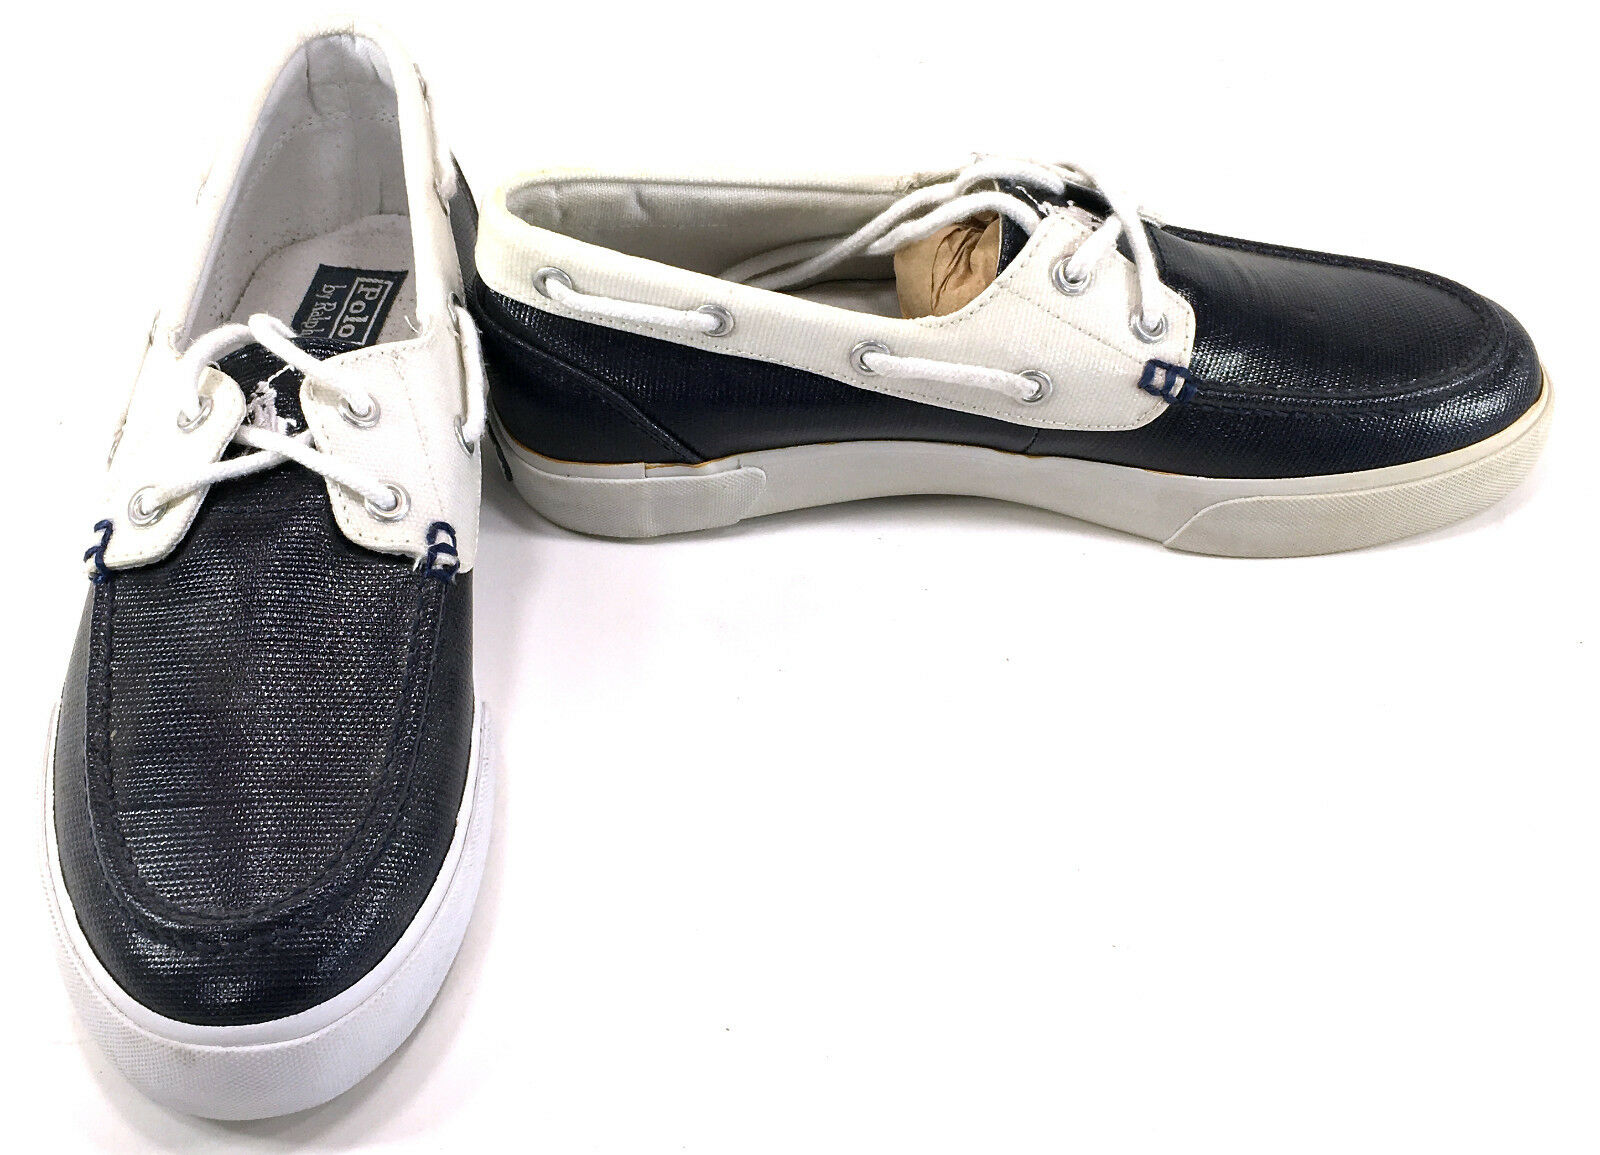 Polo Ralph Lauren Boat shoes Lander Coated Canvas Black Cream Topsiders Size 8